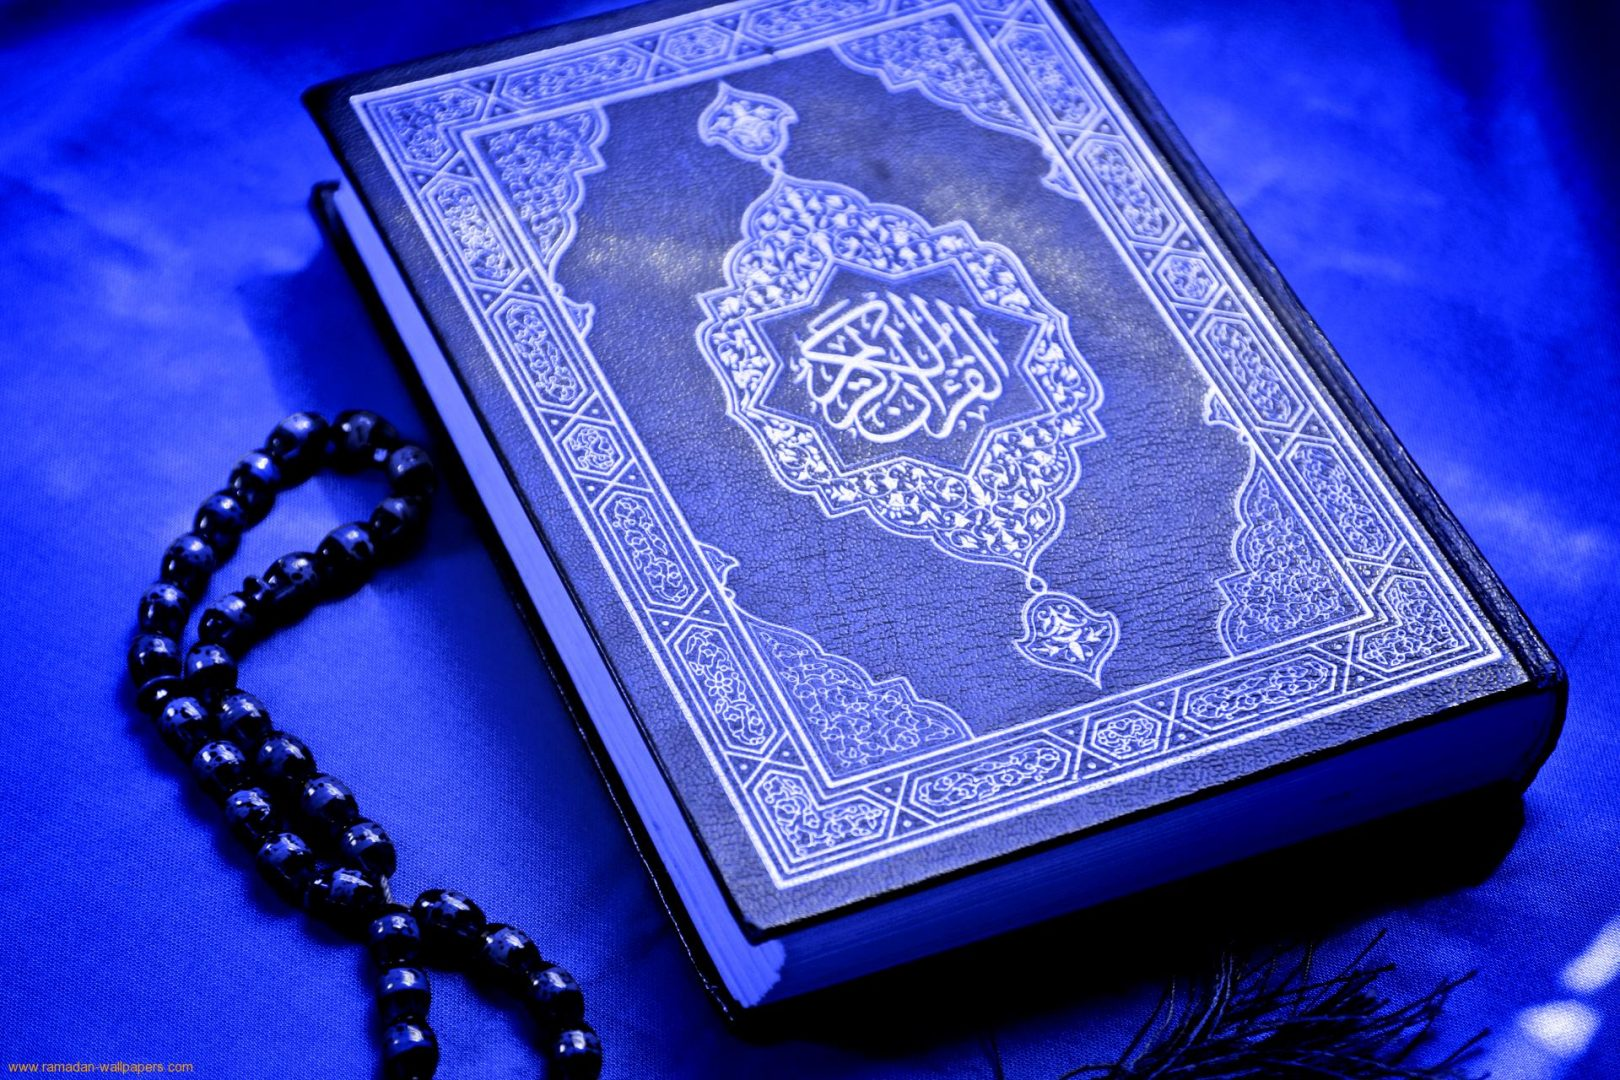 Best Life Quotes Wallpapers Hd Holy Quran Blue Holy Image Islamic Quran Islamic 972